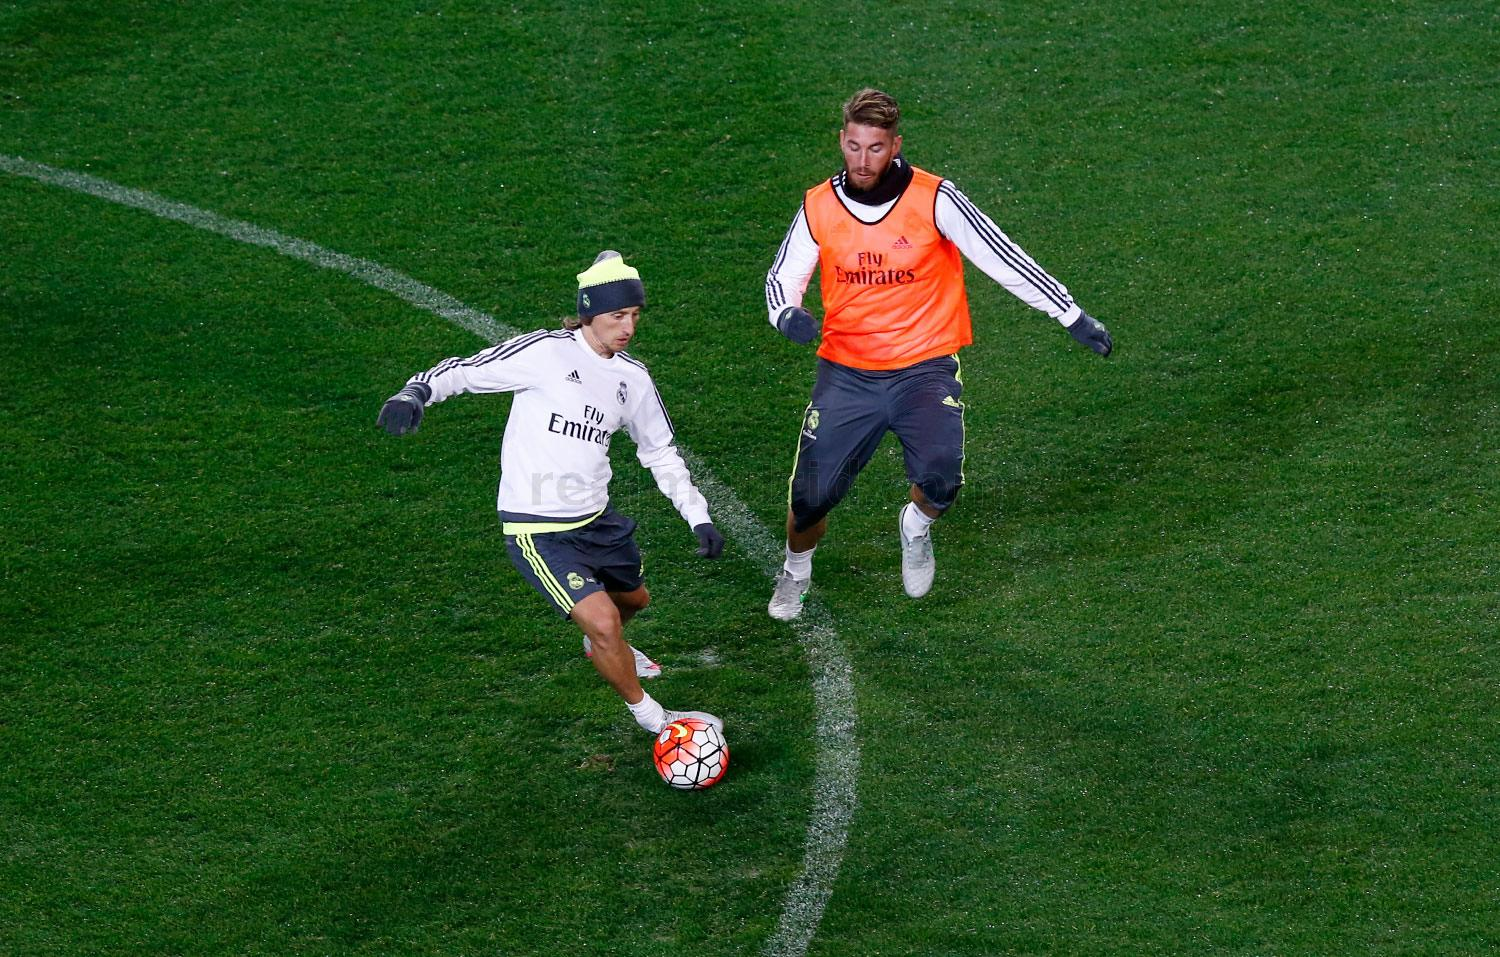 Real Madrid - Entrenamiento del Real Madrid - 15-07-2015